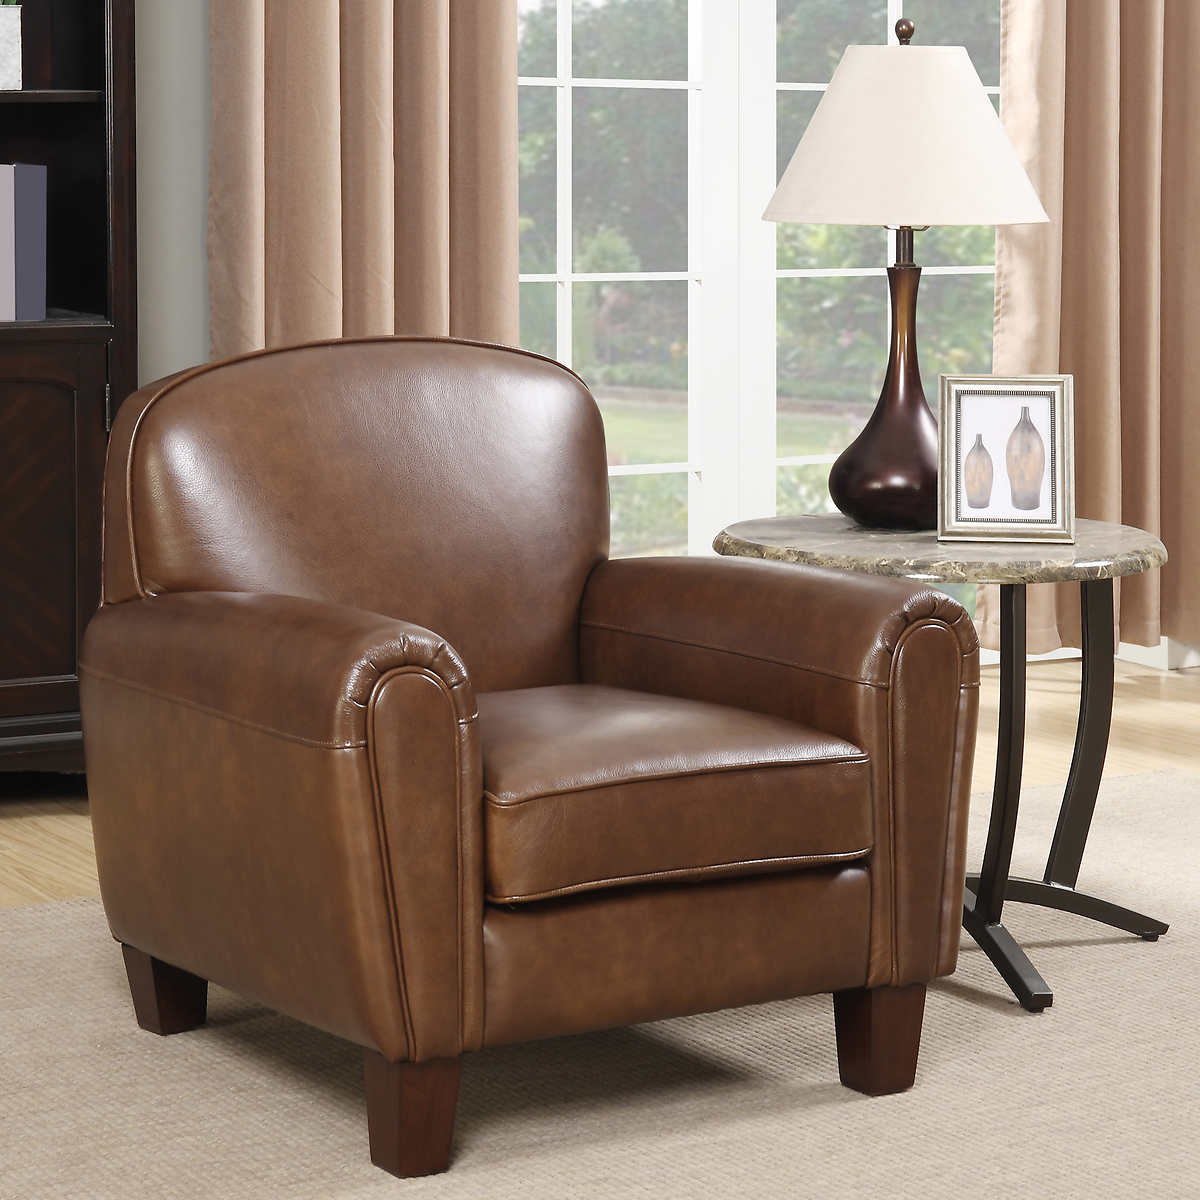 Gilbert Top Grain Leather Accent ChairChairs   Costco. Aqua Leather Accent Chair. Home Design Ideas